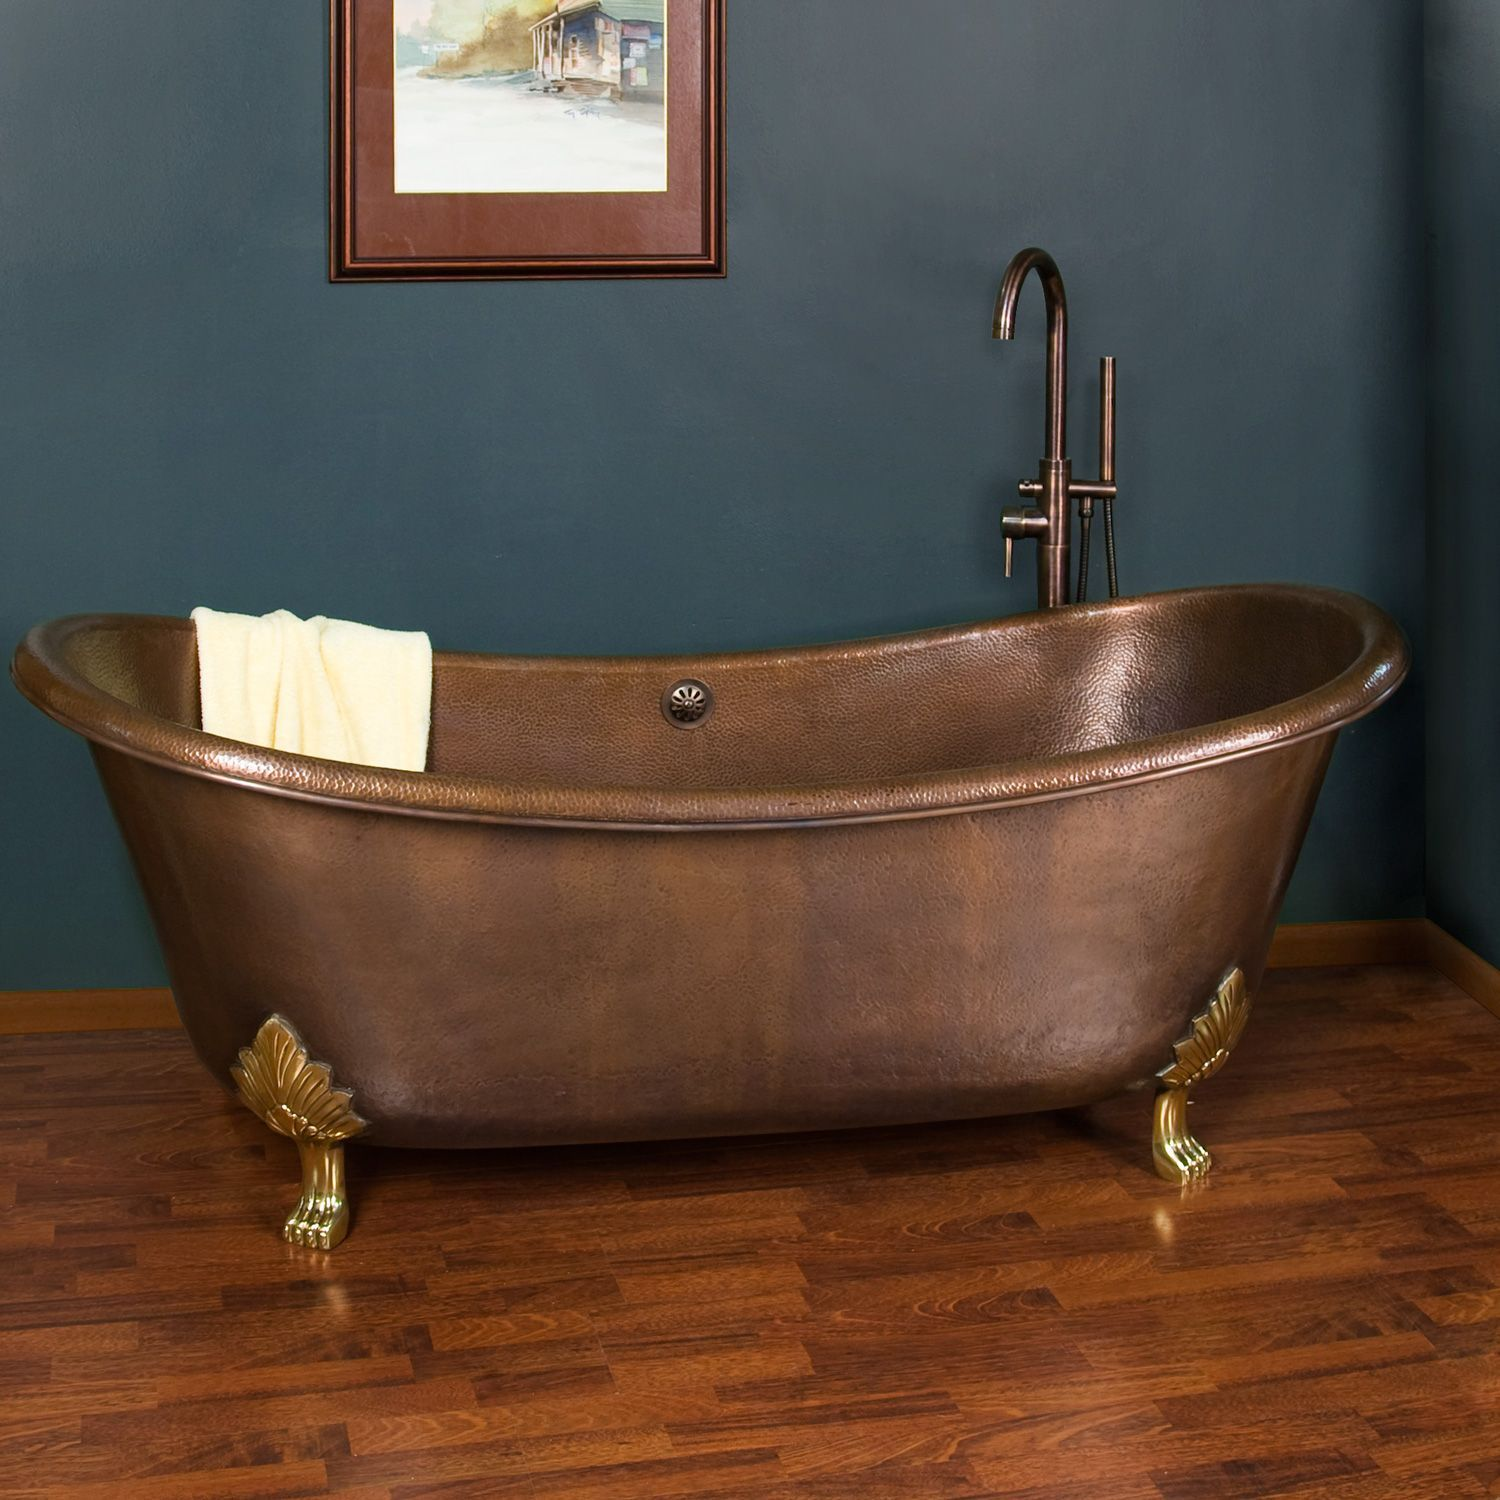 Bathtubs Over 700 Tubs In Stock Free Shipping